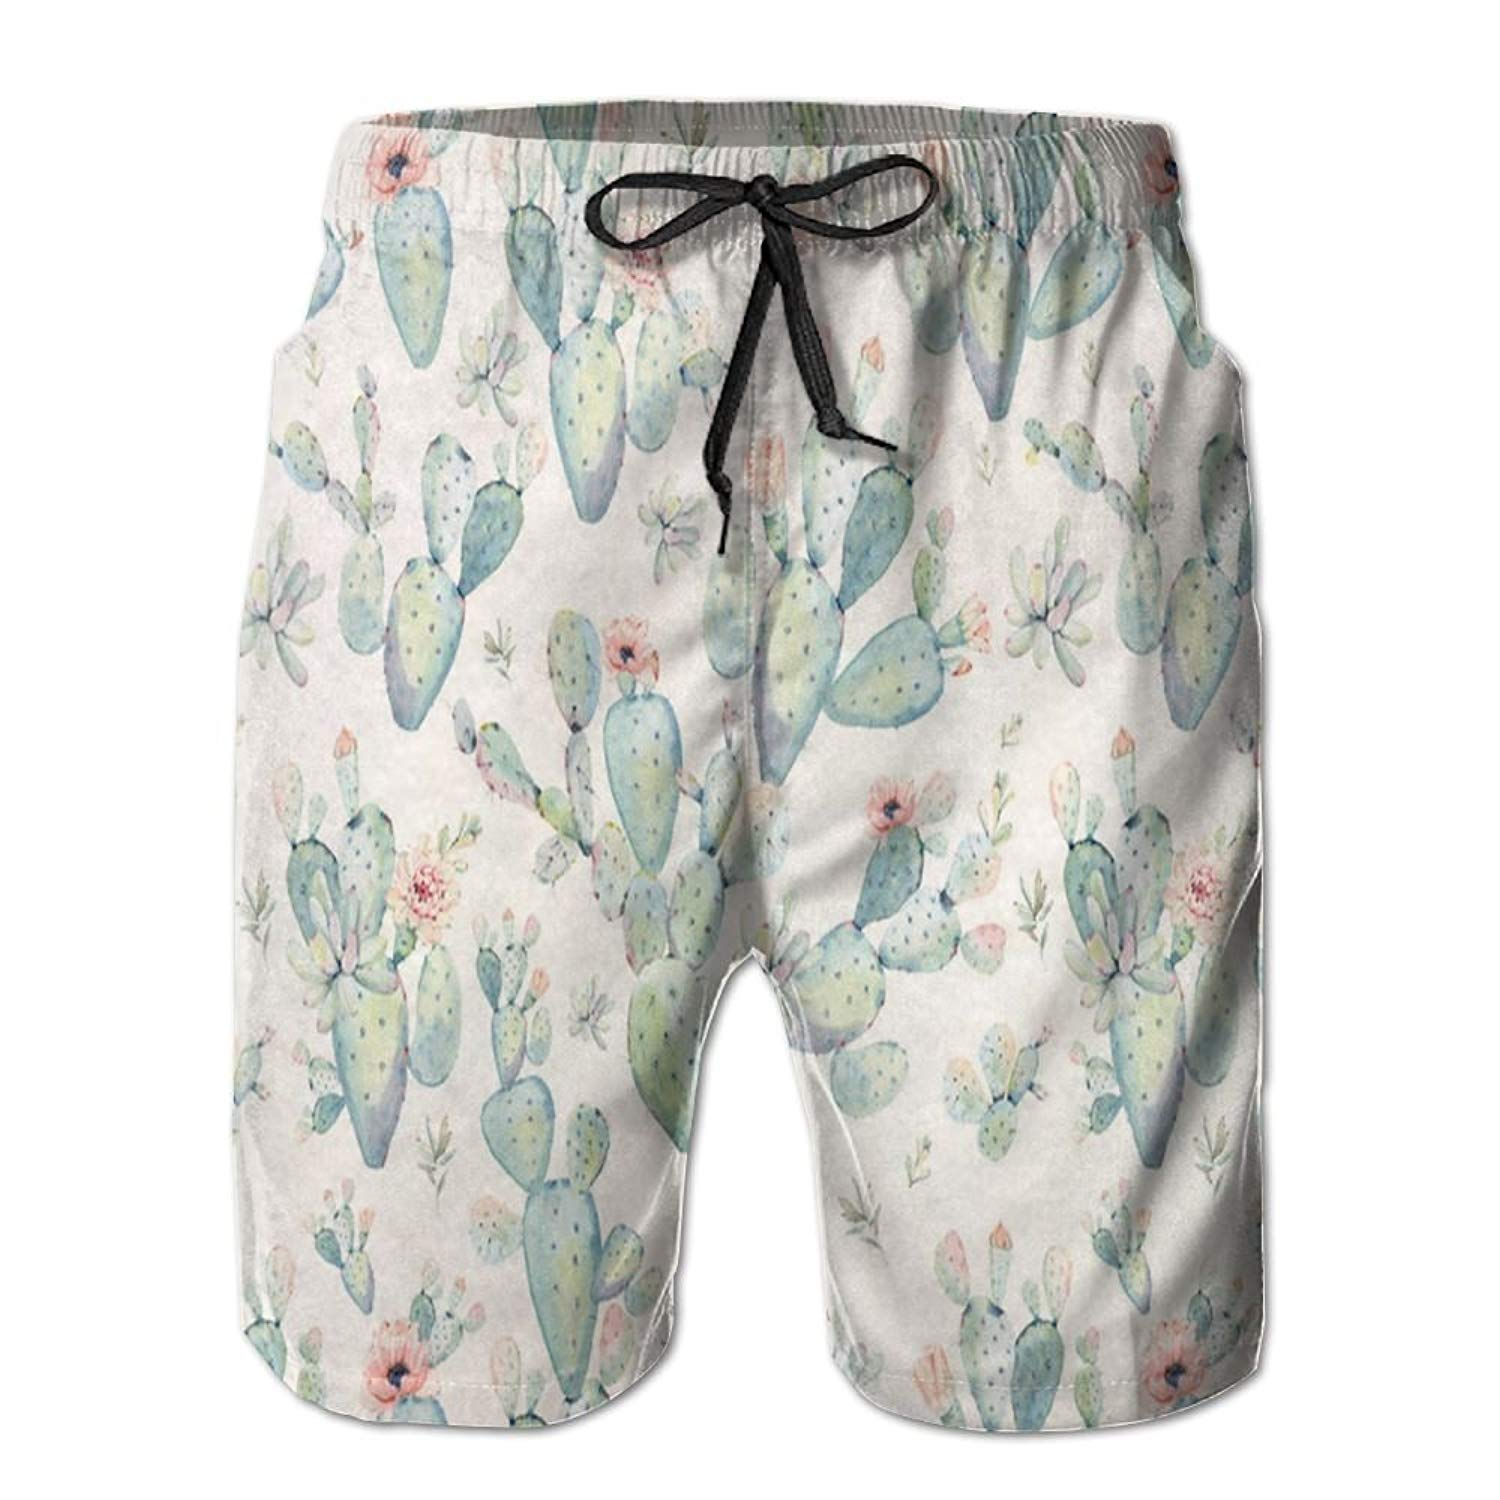 f849c12253 Get Quotations · Alin-Z Cactus Flowers Cactus Men's Quick Dry Swim Trunks  Beach Surfing Shorts